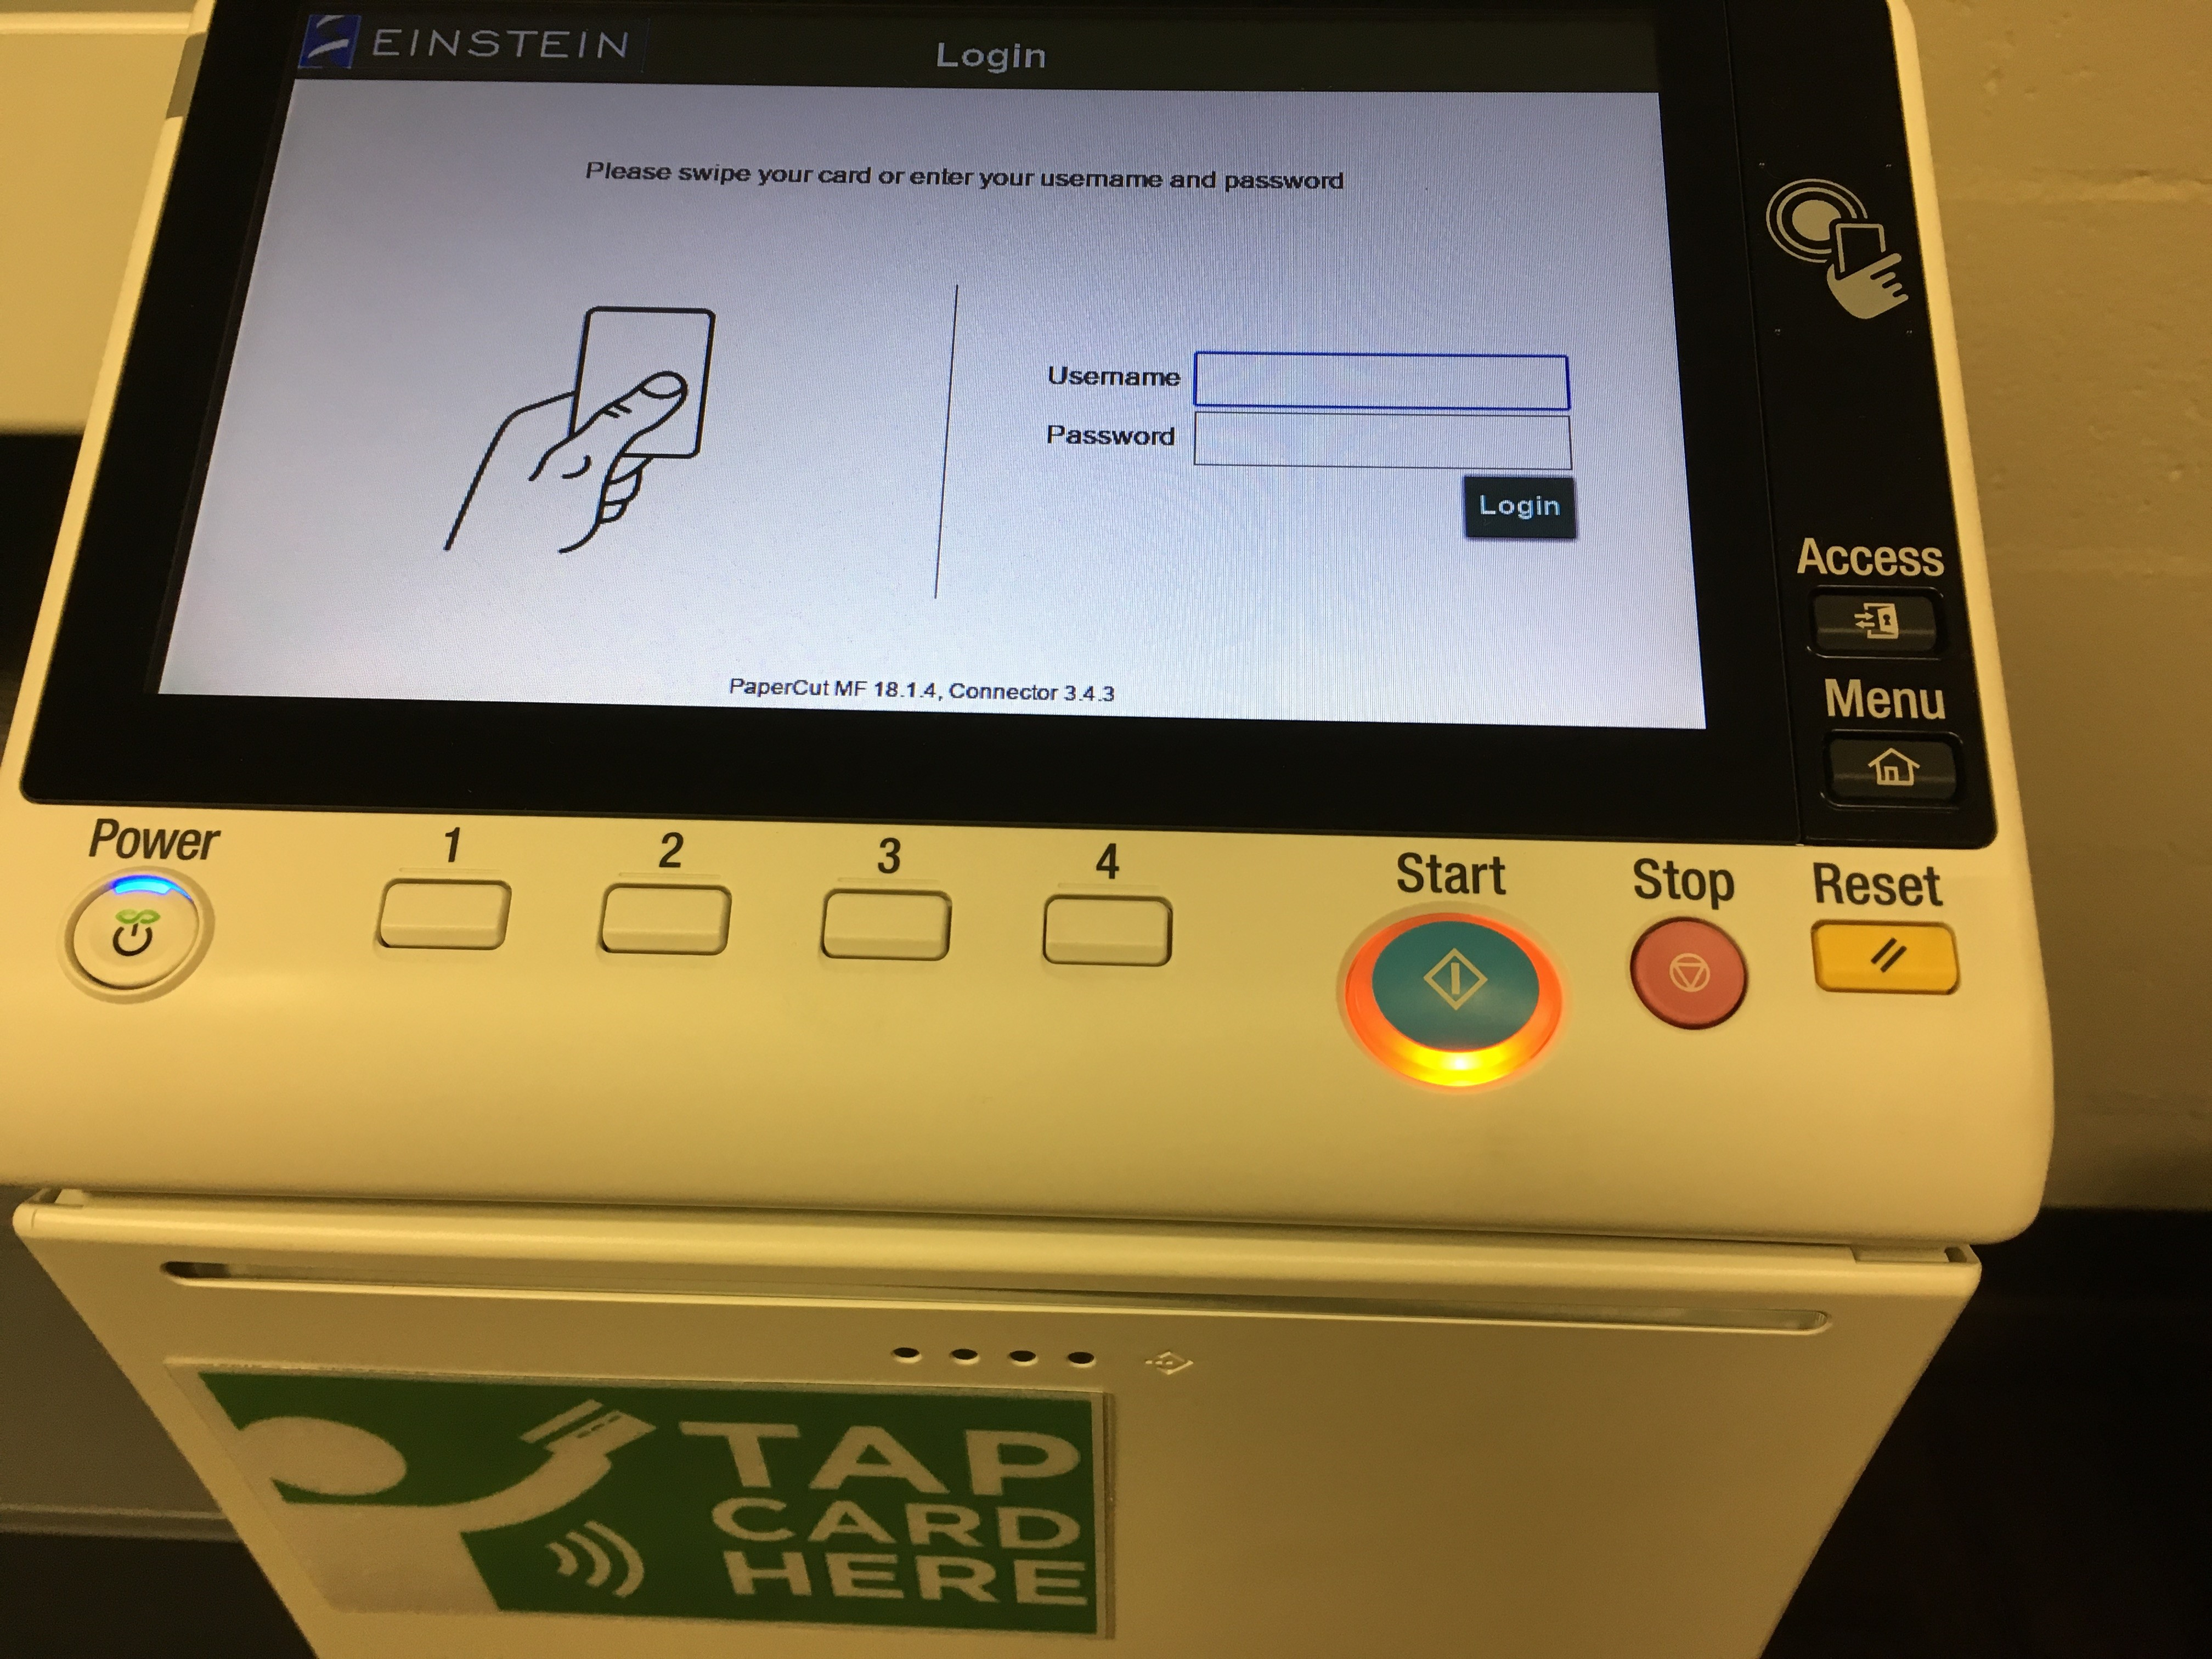 scan your ID